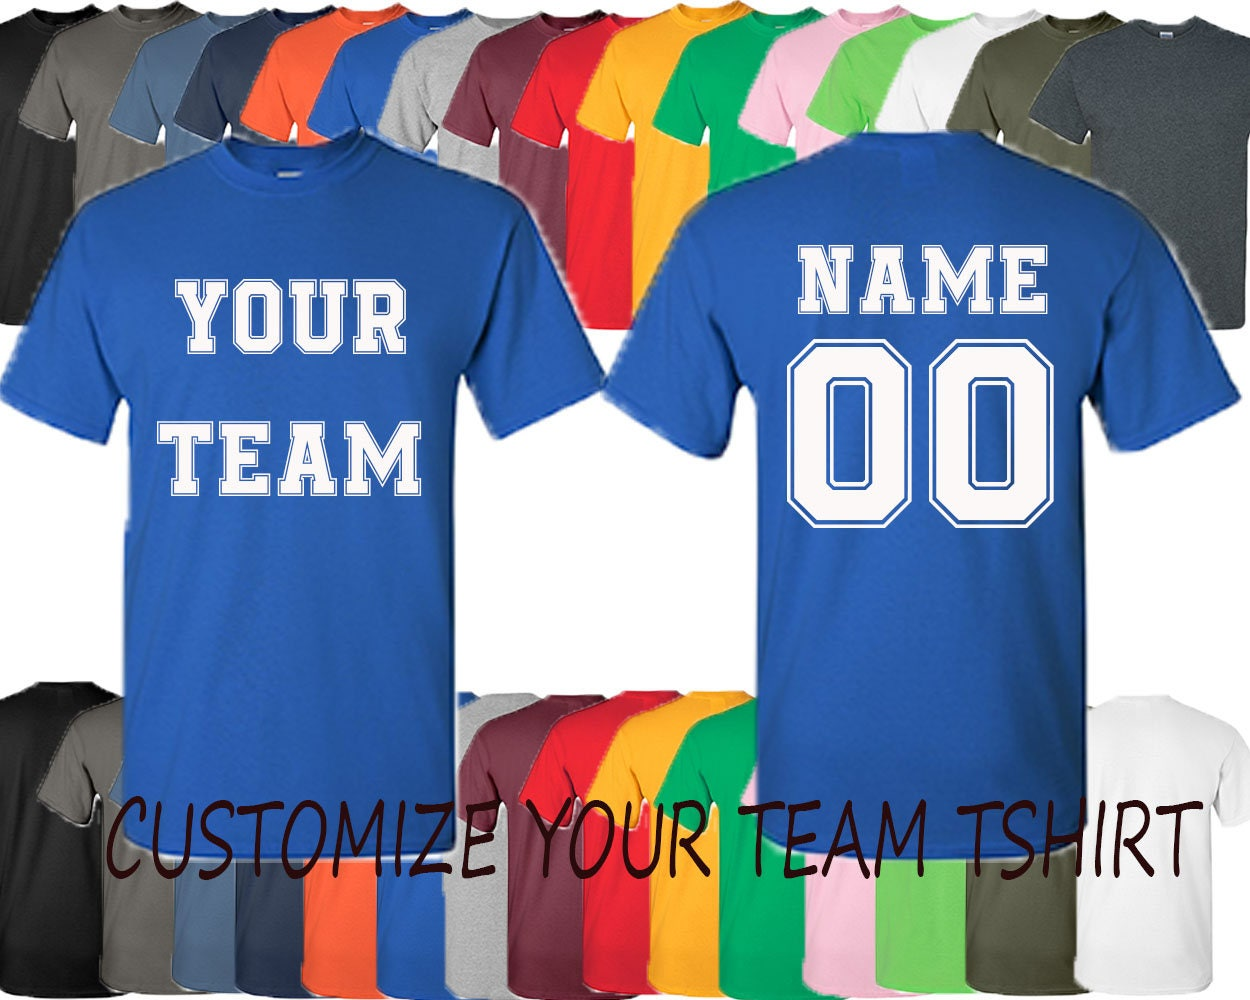 Custumized Personalized Custom Tee Shirt Create Your Team Tee Etsy